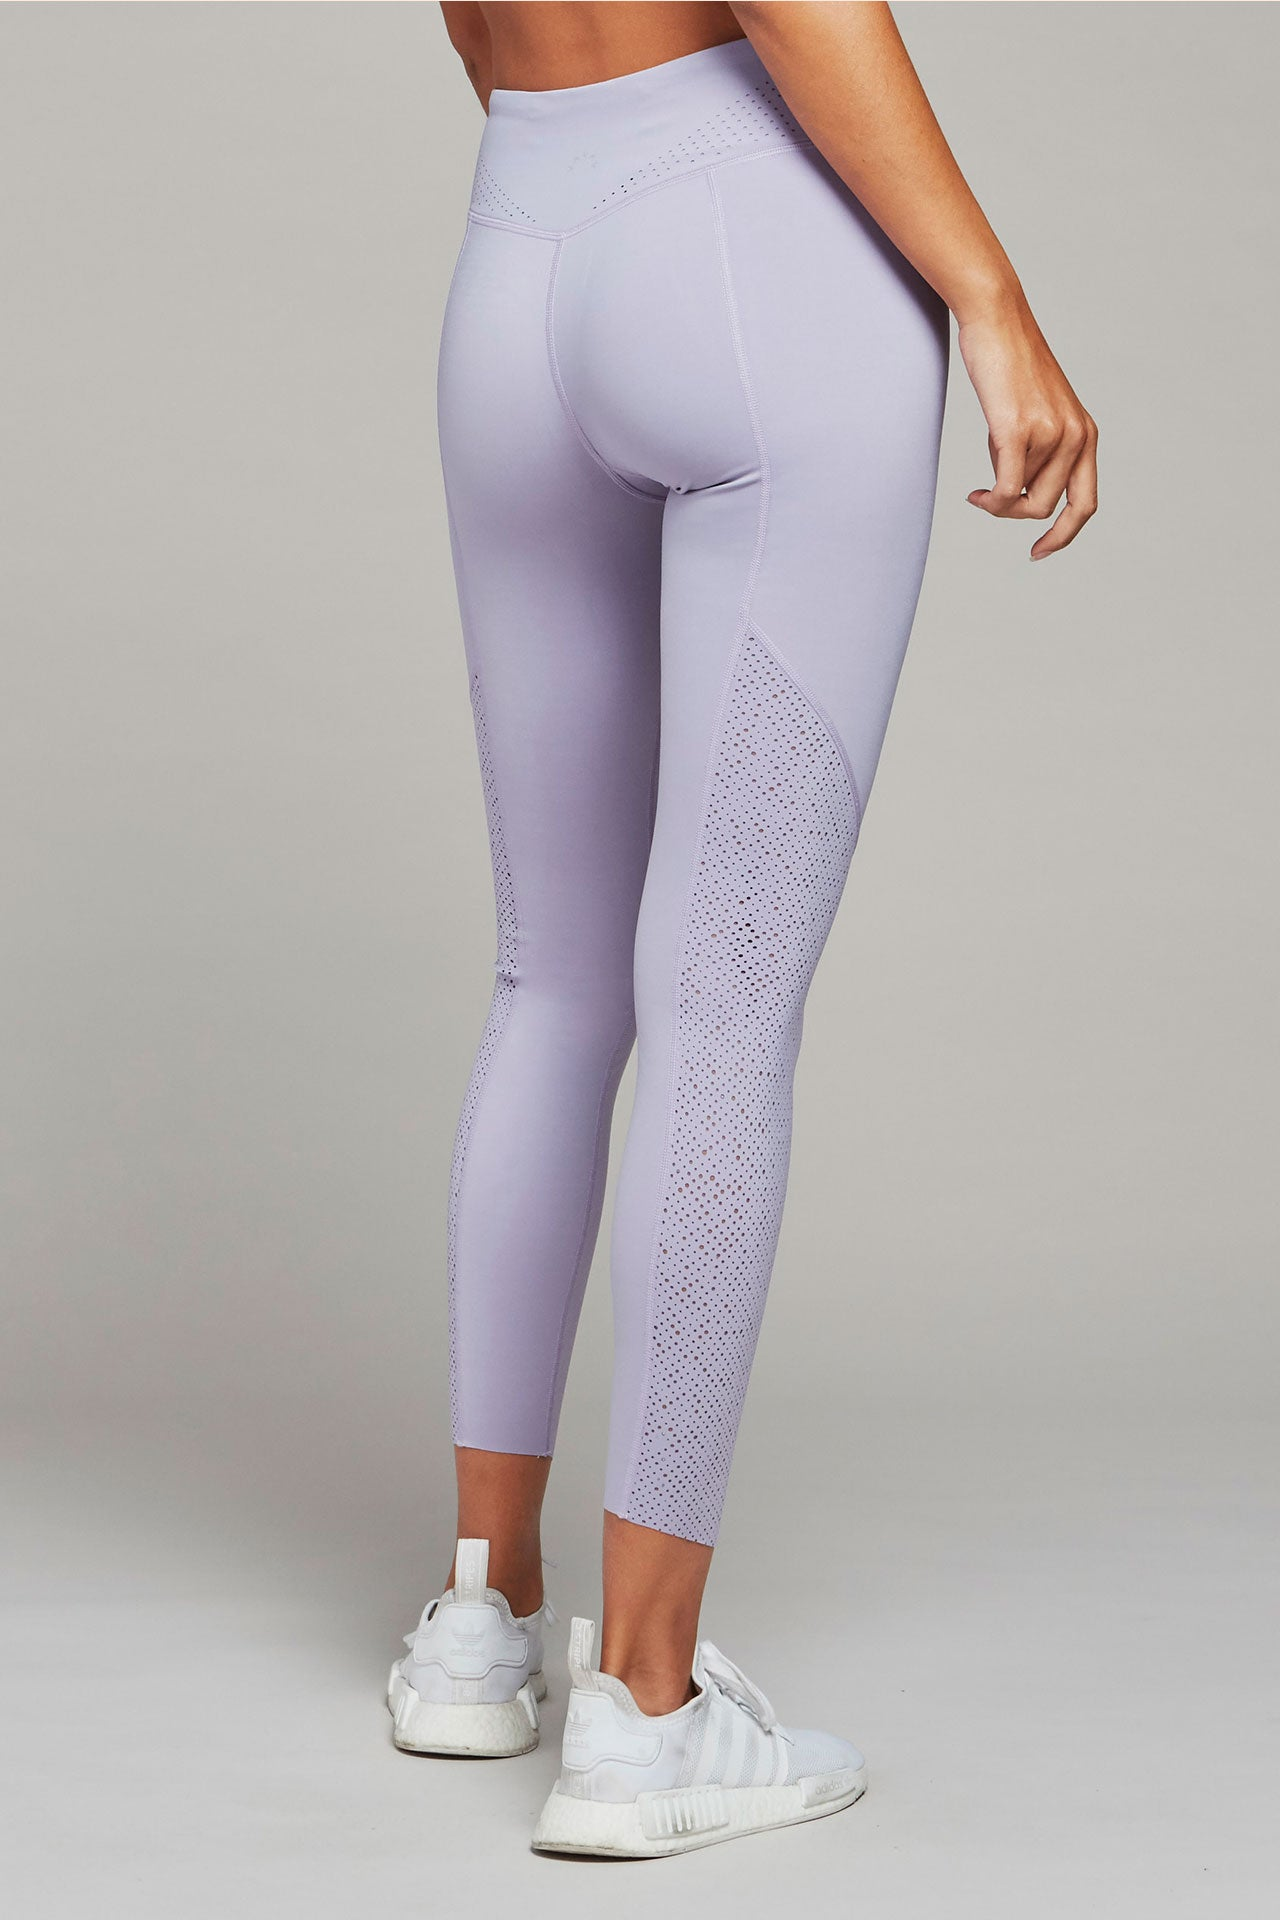 Varley Chester Tight - Sculptique